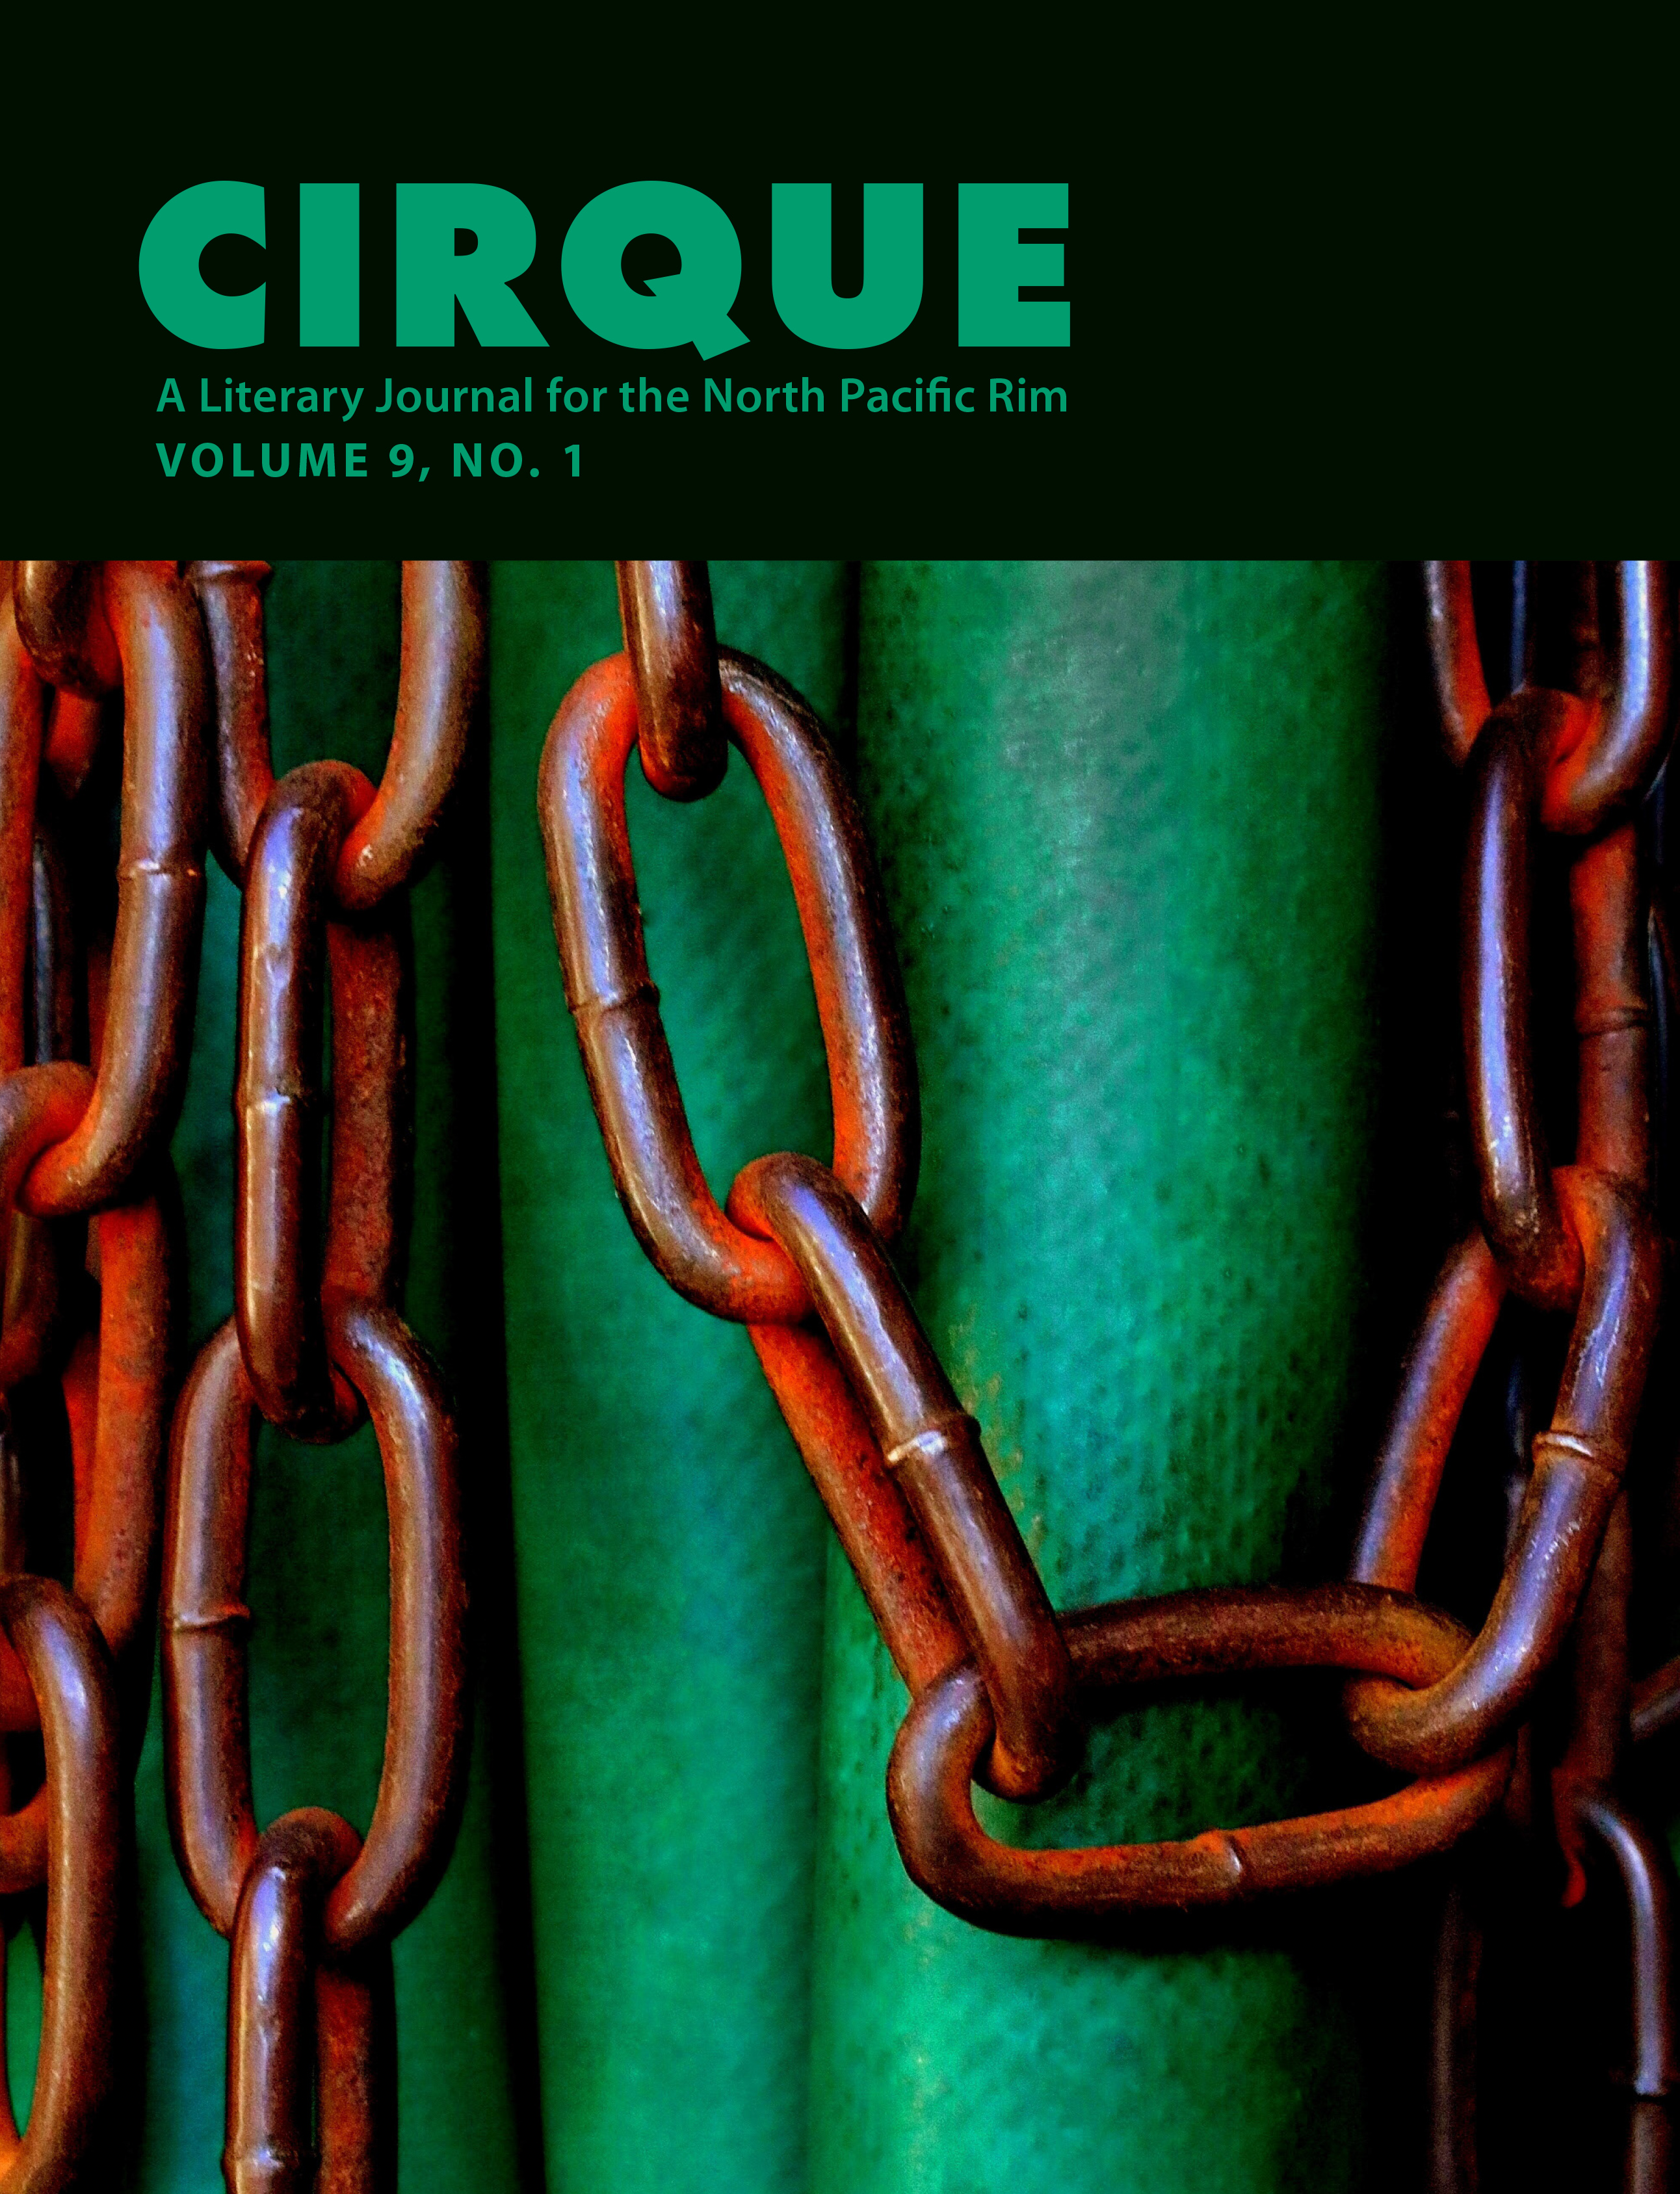 A new issue of CIRQUE